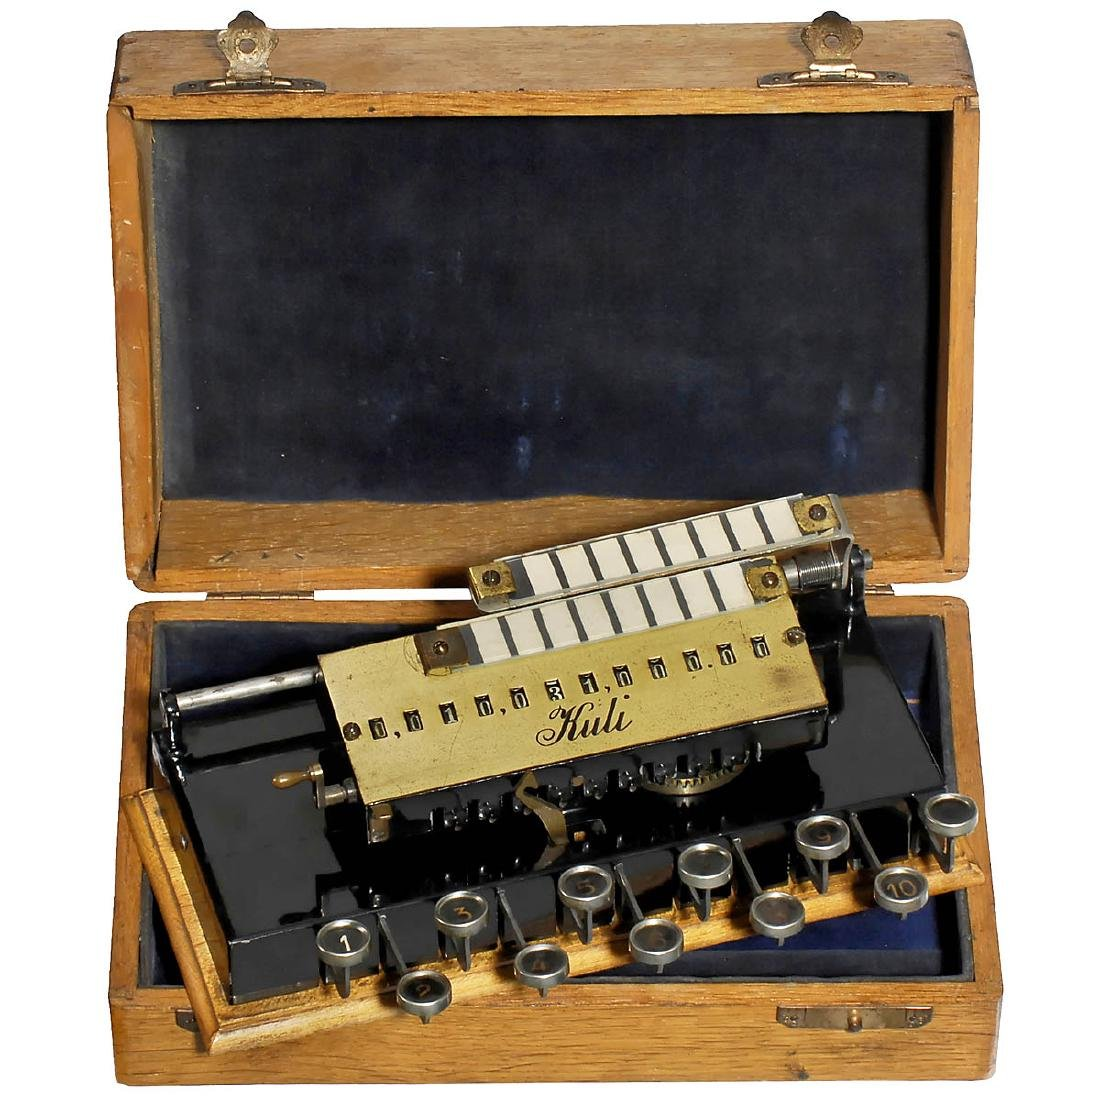 Kuli Calculating Machine, 1909